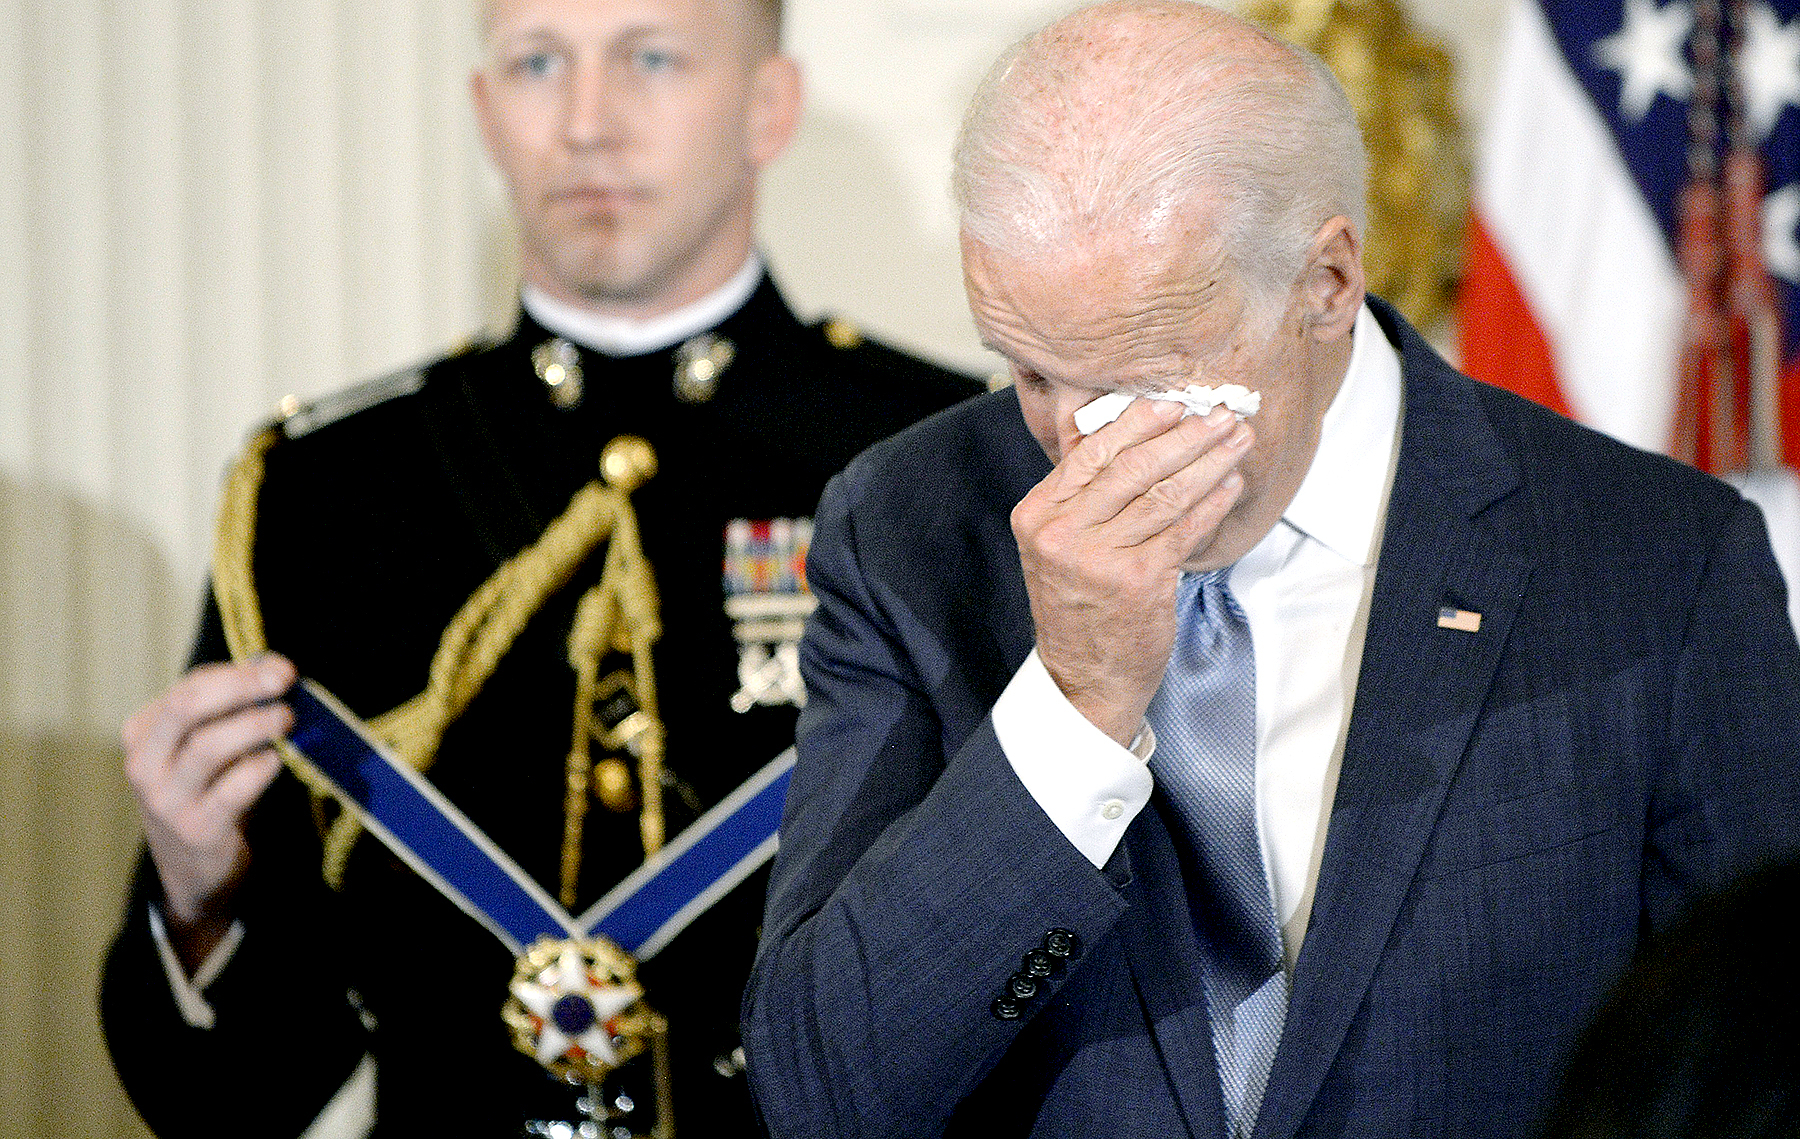 U.S. Vice President Joe Biden wipes his eyes as Preident Barack Obama presents him with Medal of Freedom during an event in the State Dinning room of the White House January 12, 2017 in Washington, DC.